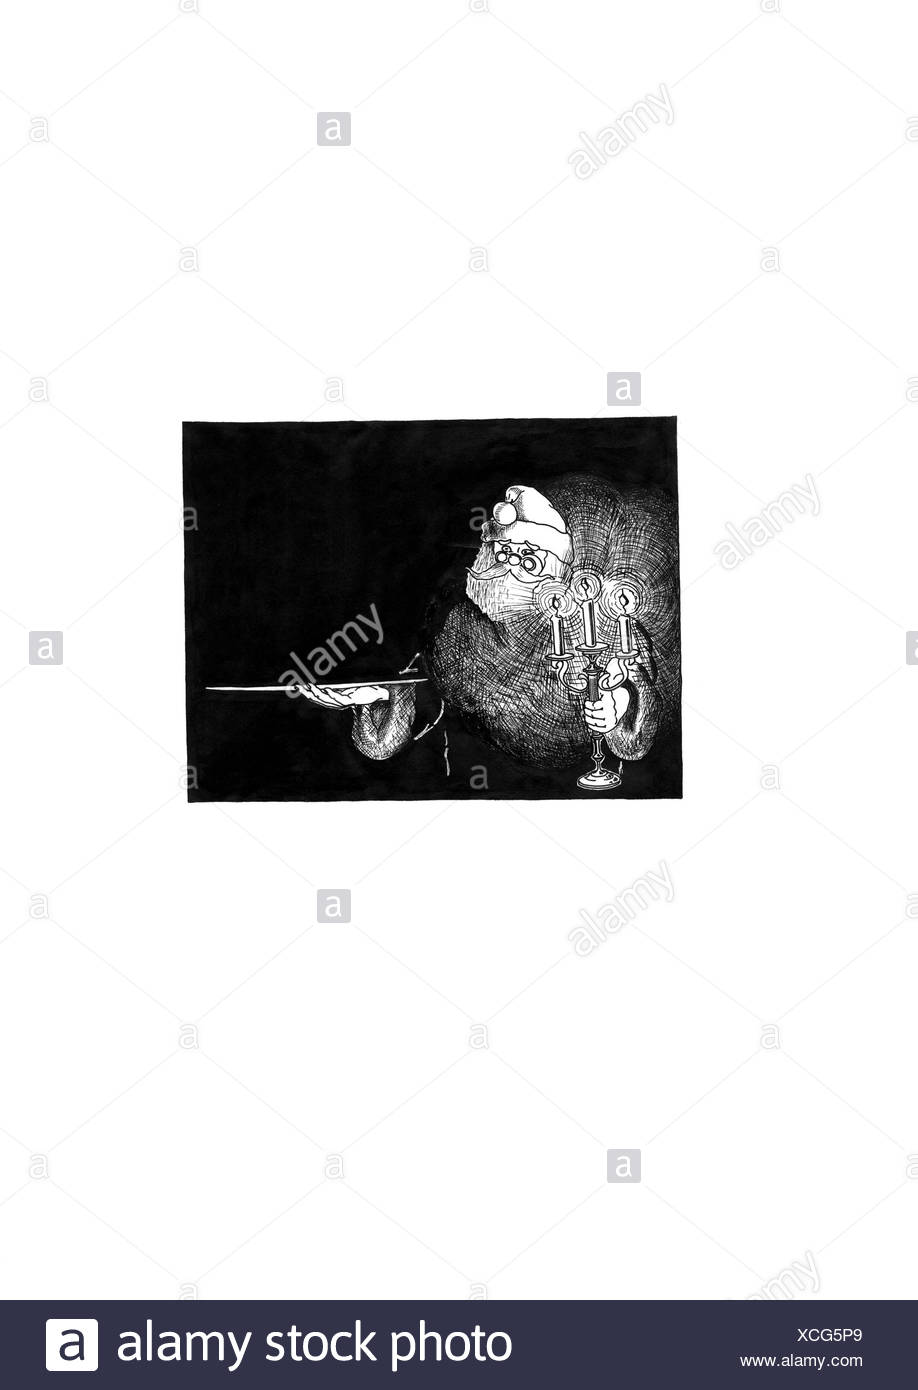 Nicholas with candlestick - Stock Image